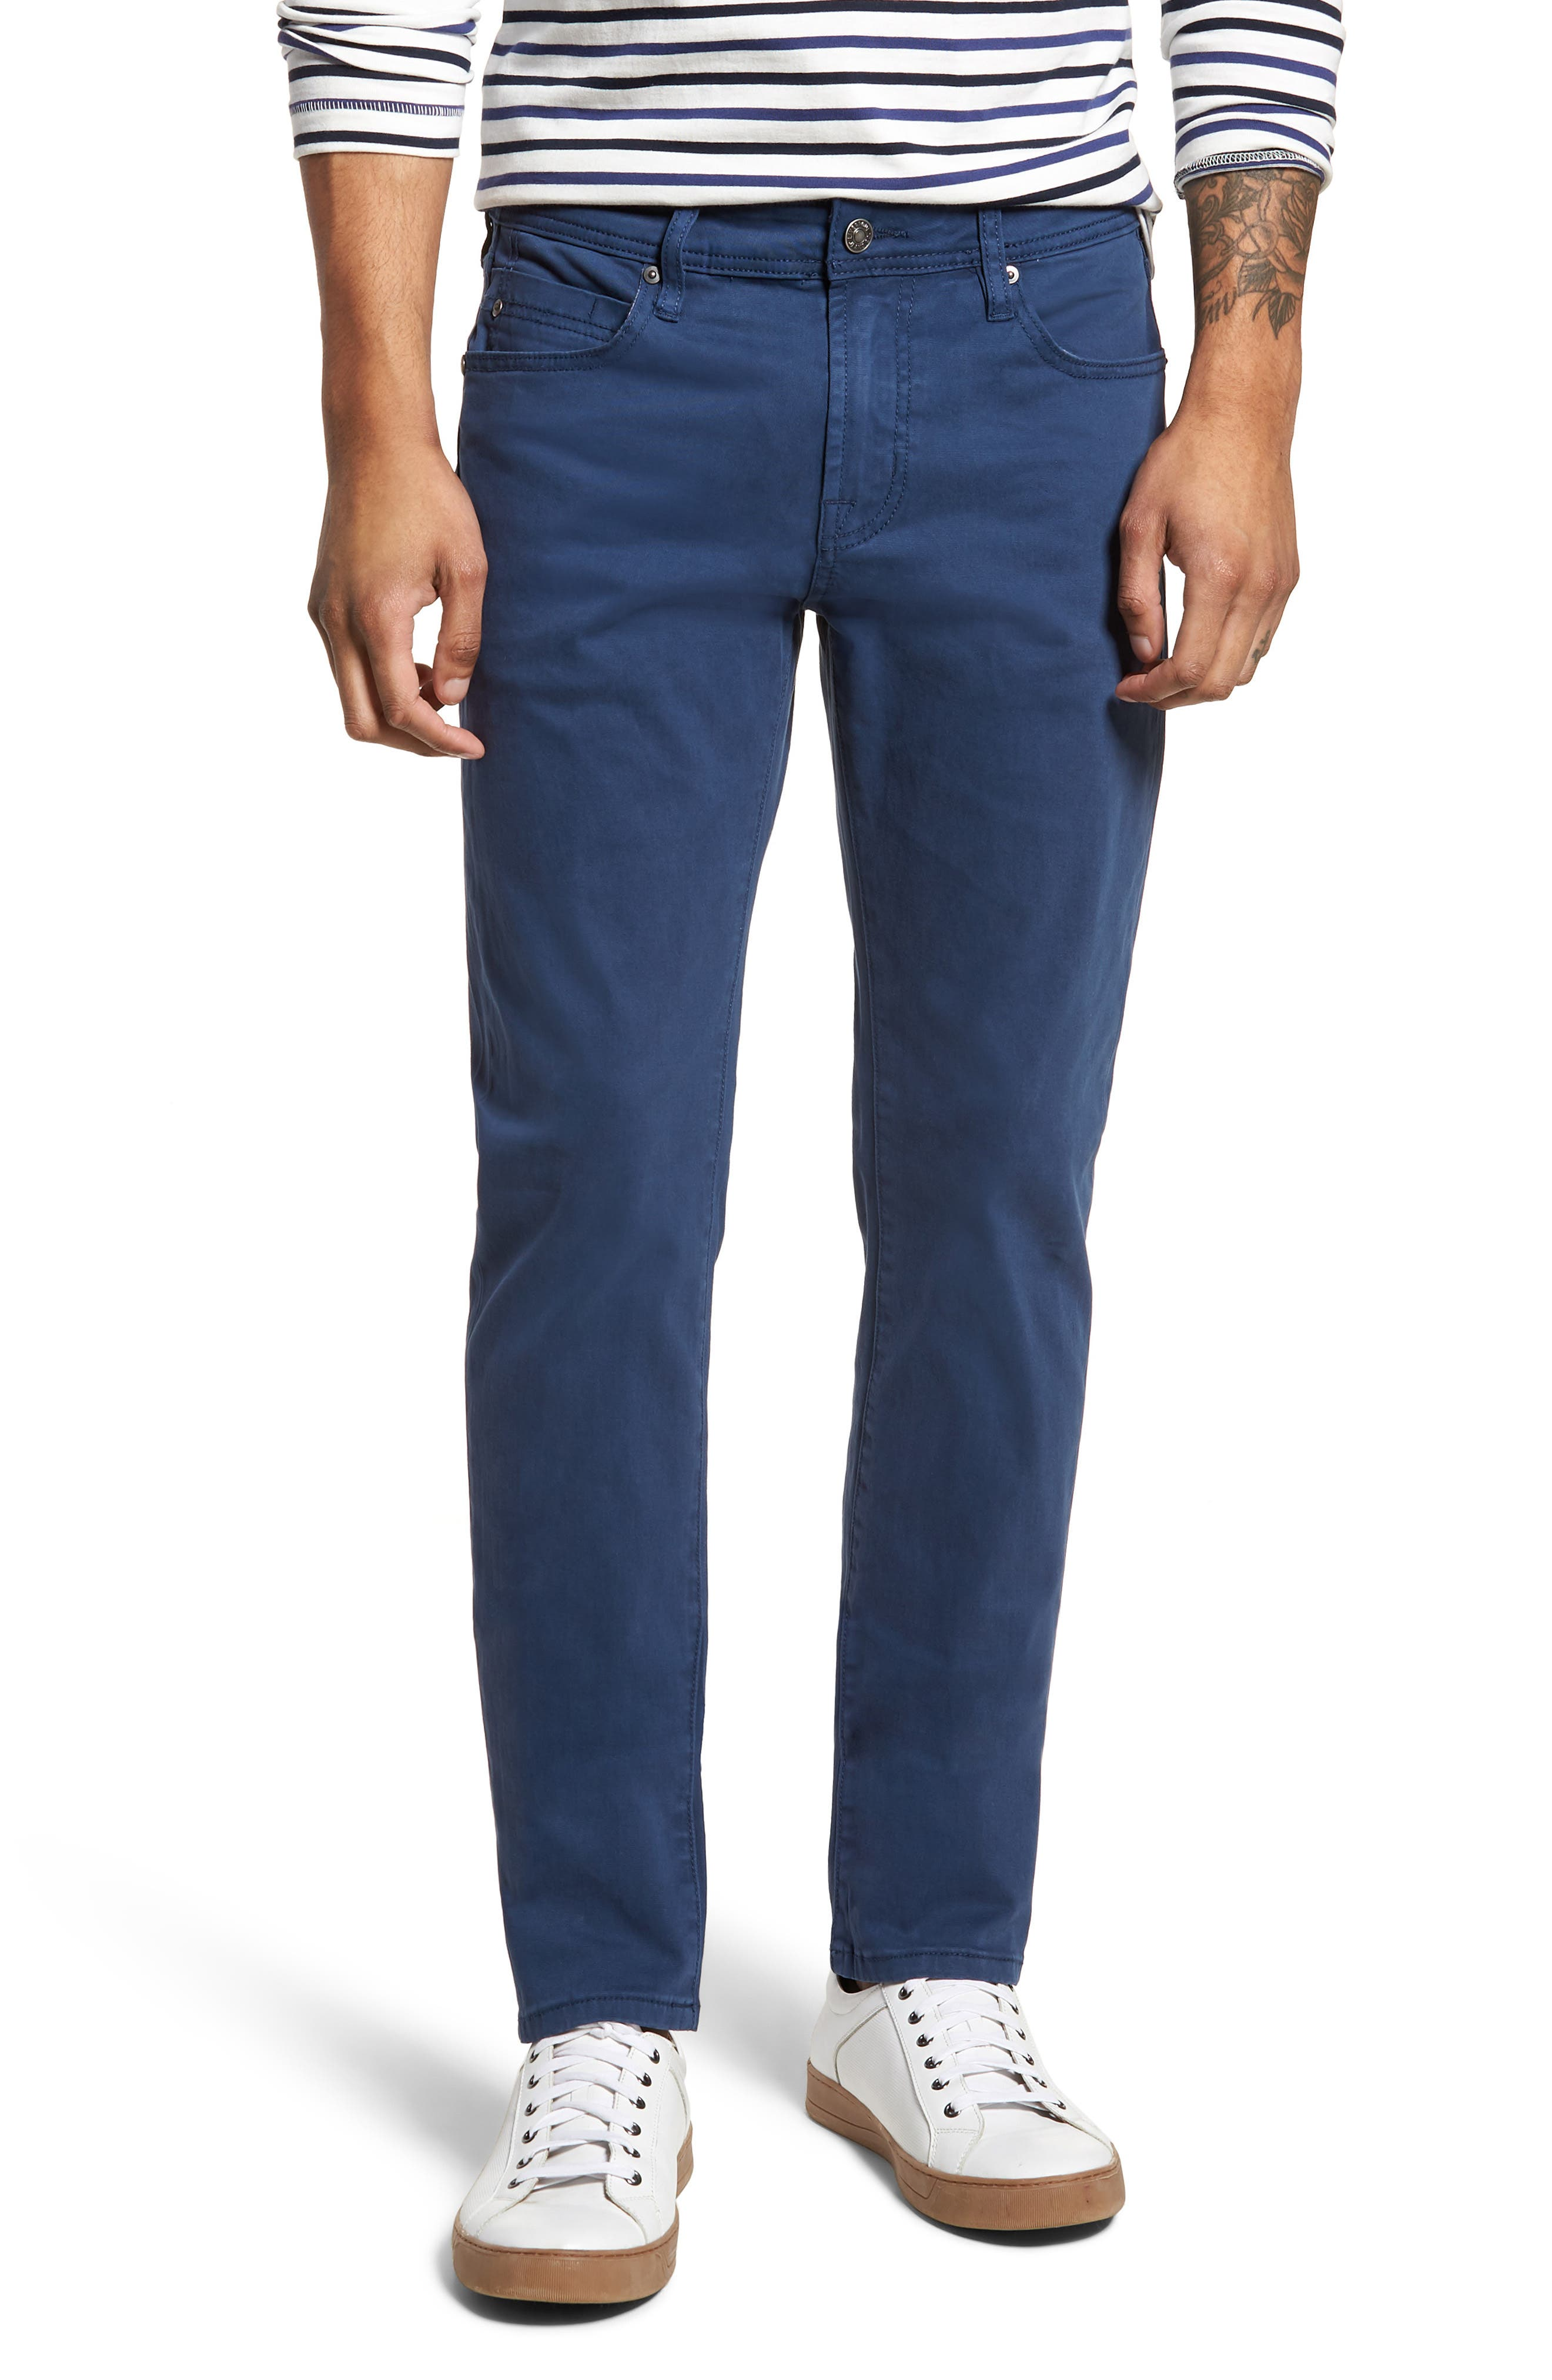 Liverpool Jeans Co. Kingston Slim Straight Leg Jeans (Blue Twilight)